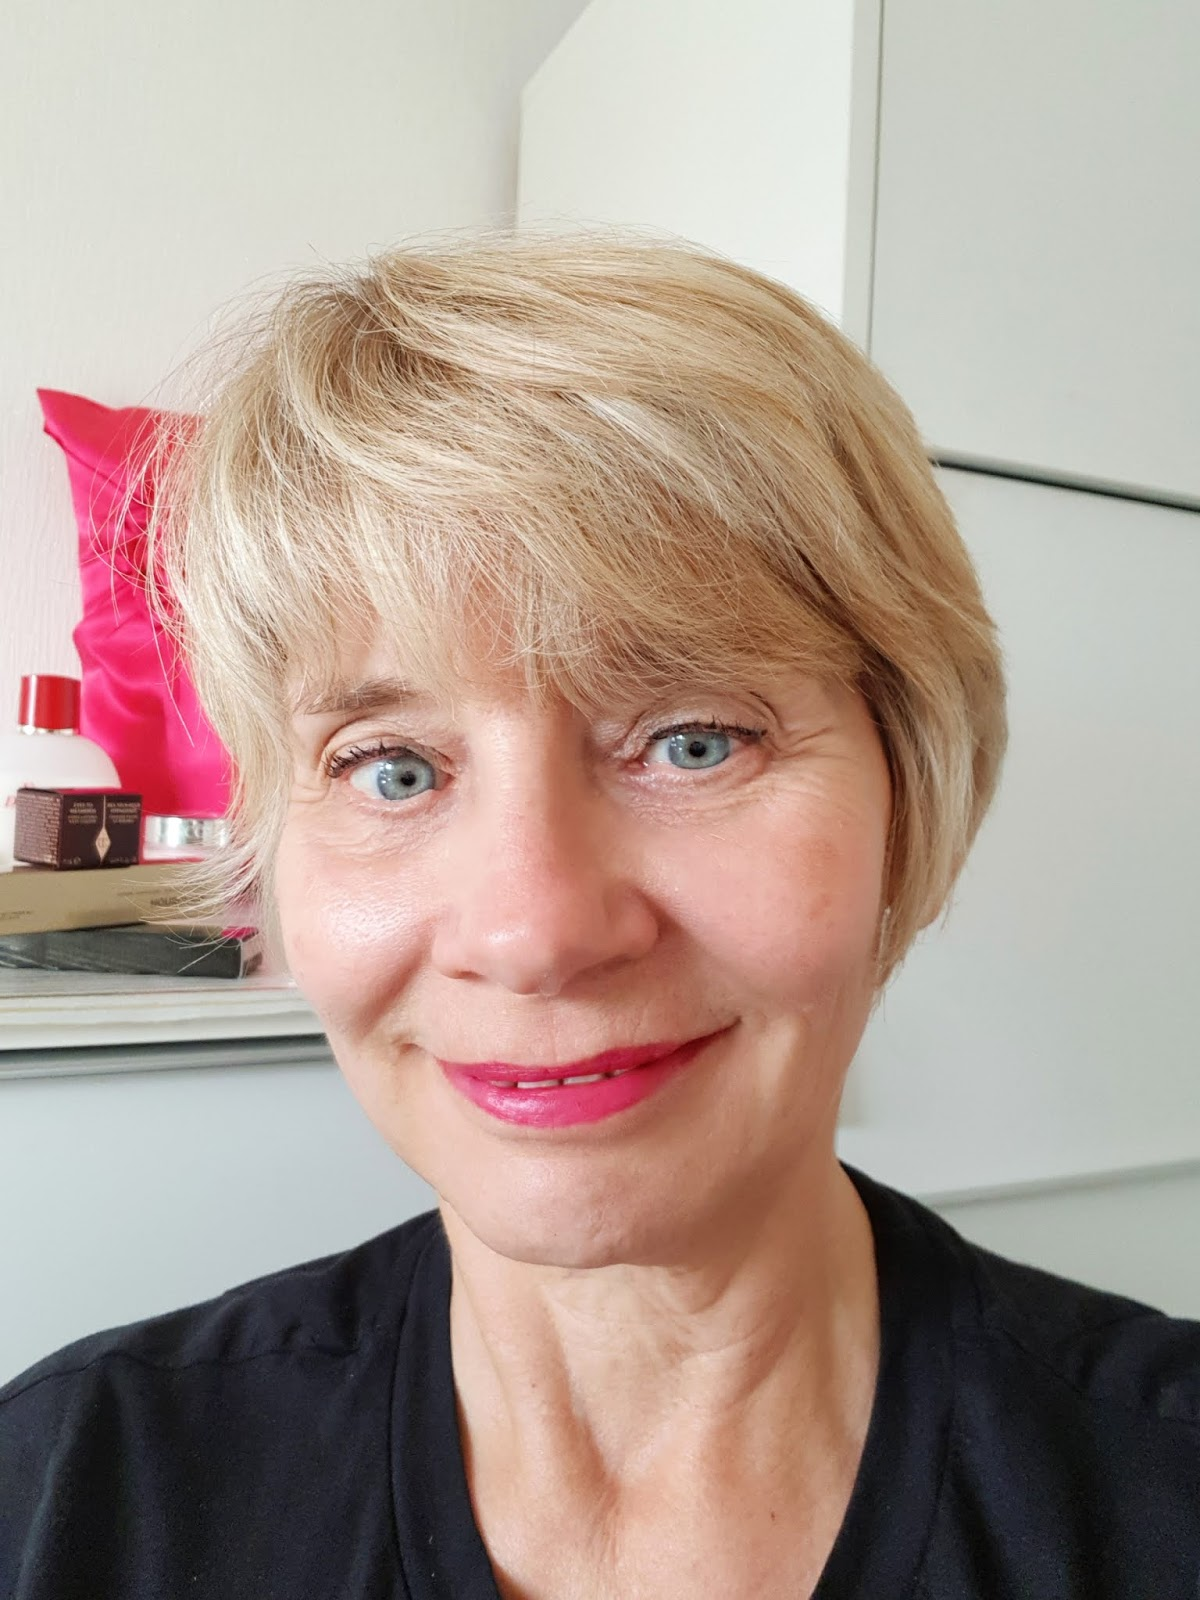 Is This Mutton? the blog for fashionable over 45s, tries out lipsticks and a primer from a brand specifically designed for the mature woman, Look Fabulous Forever.